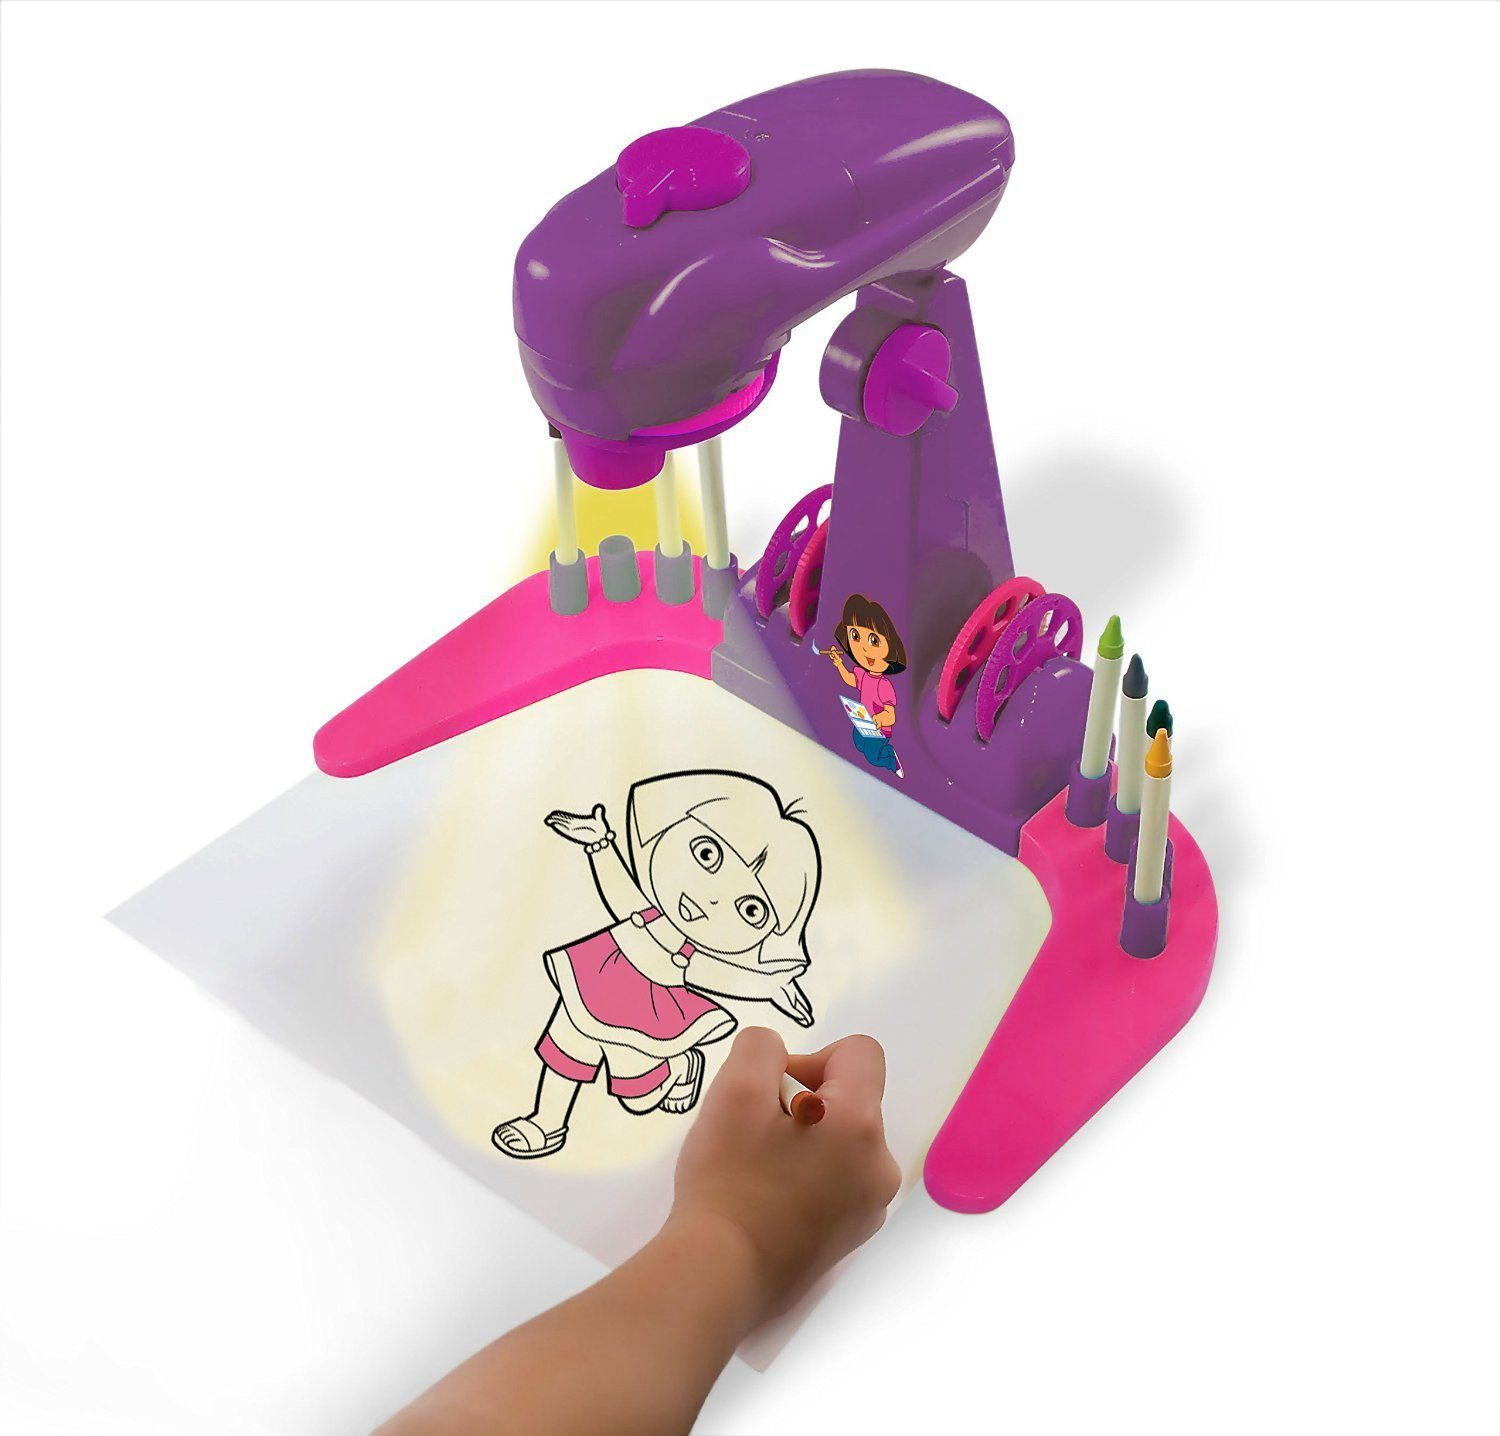 Dora Trace and Learn Projector Only $7.33 (Reg. $29.99)!